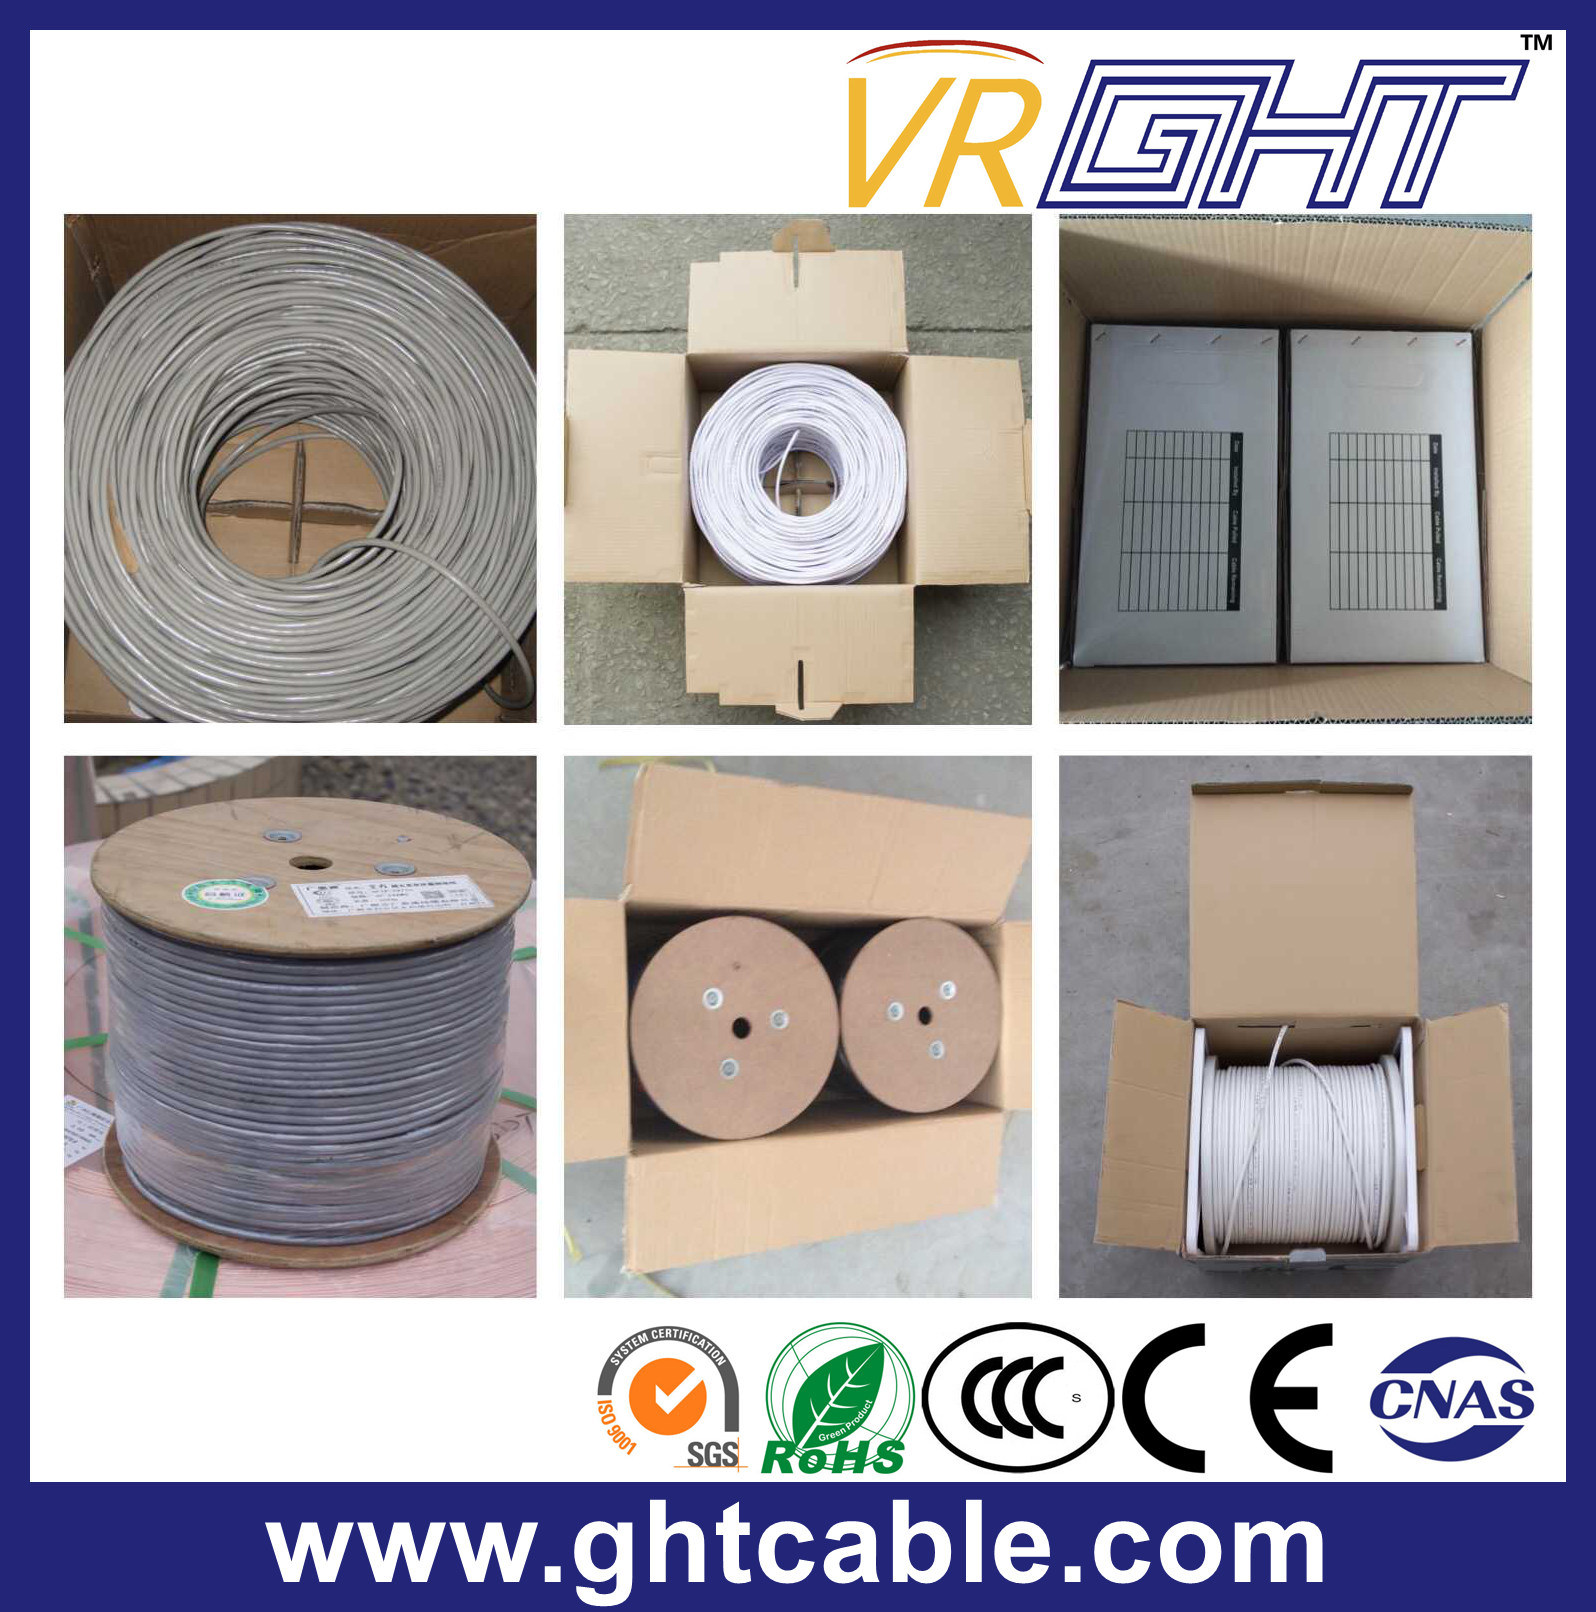 Solid Bare Copper UTP CAT6 LAN Cable